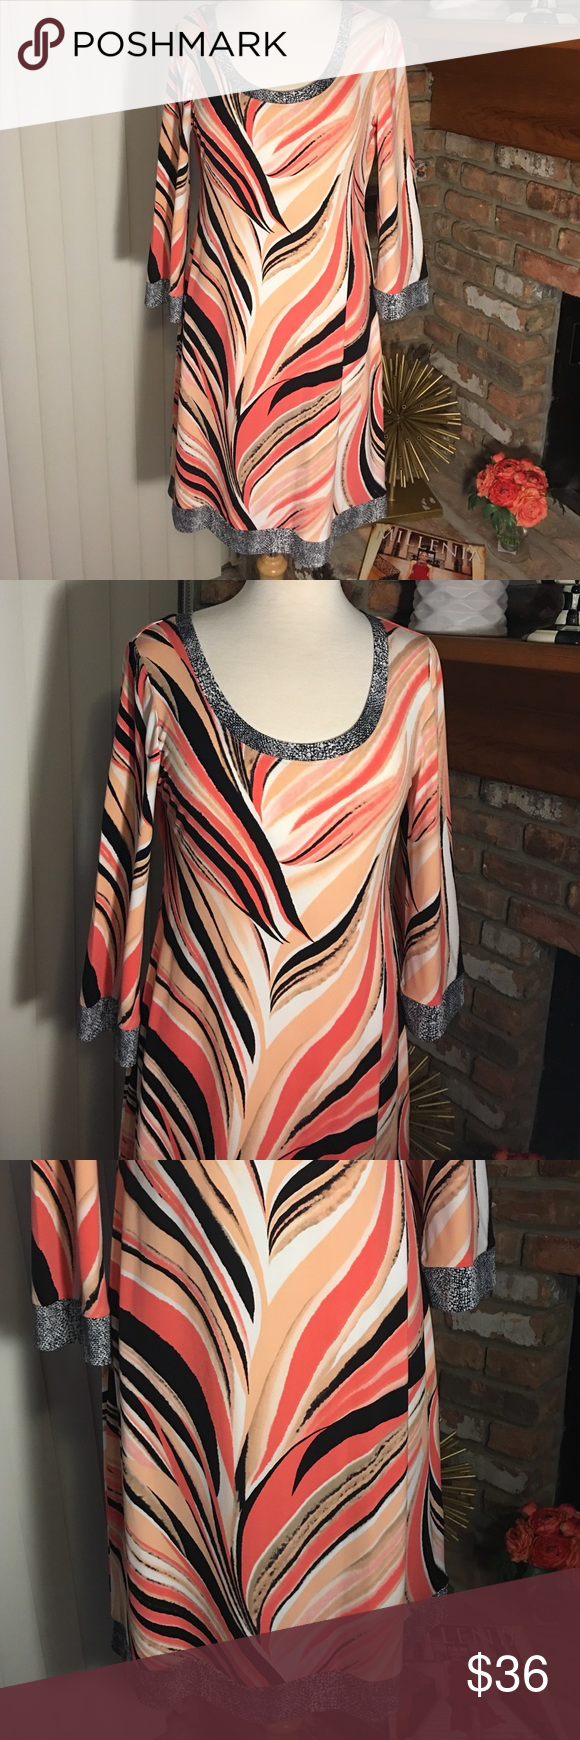 "Calvin Klein Multi Print Sheath Qtr-Sleeve Dress Nice multi swirl print dress. Round neckline. Bust approximately 38-40"" nice loose fit. Calvin Klein Dresses"